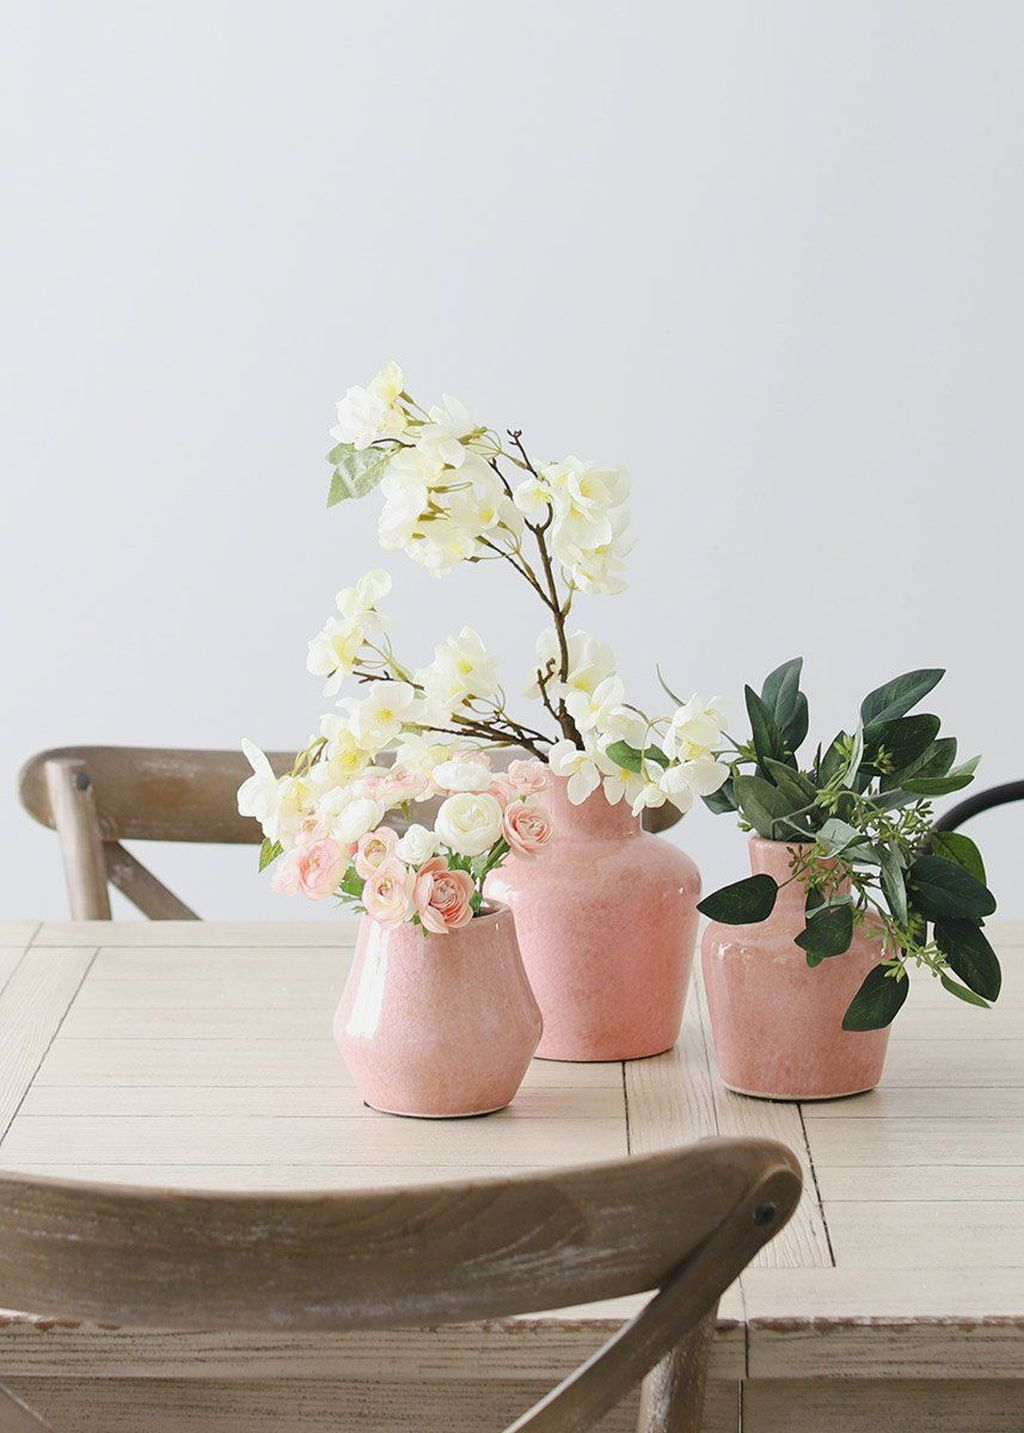 Lovely Bud Vase Centerpiece Decor Ideas For Your Dining Table 17